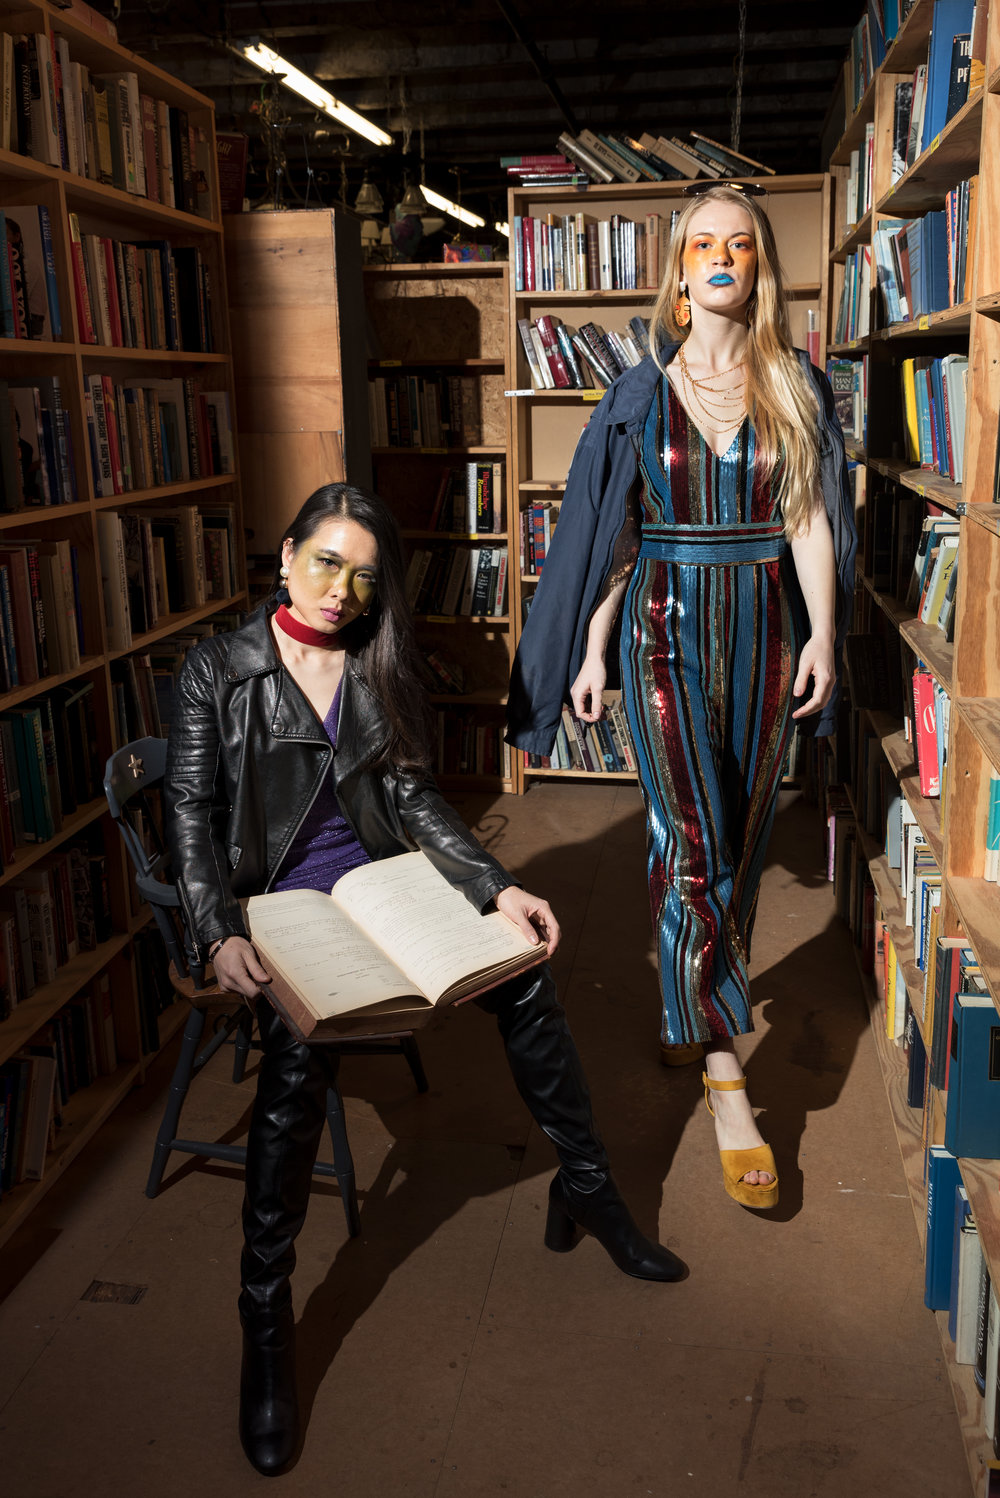 meng_and_lizzy_in_book_nook_3.jpg